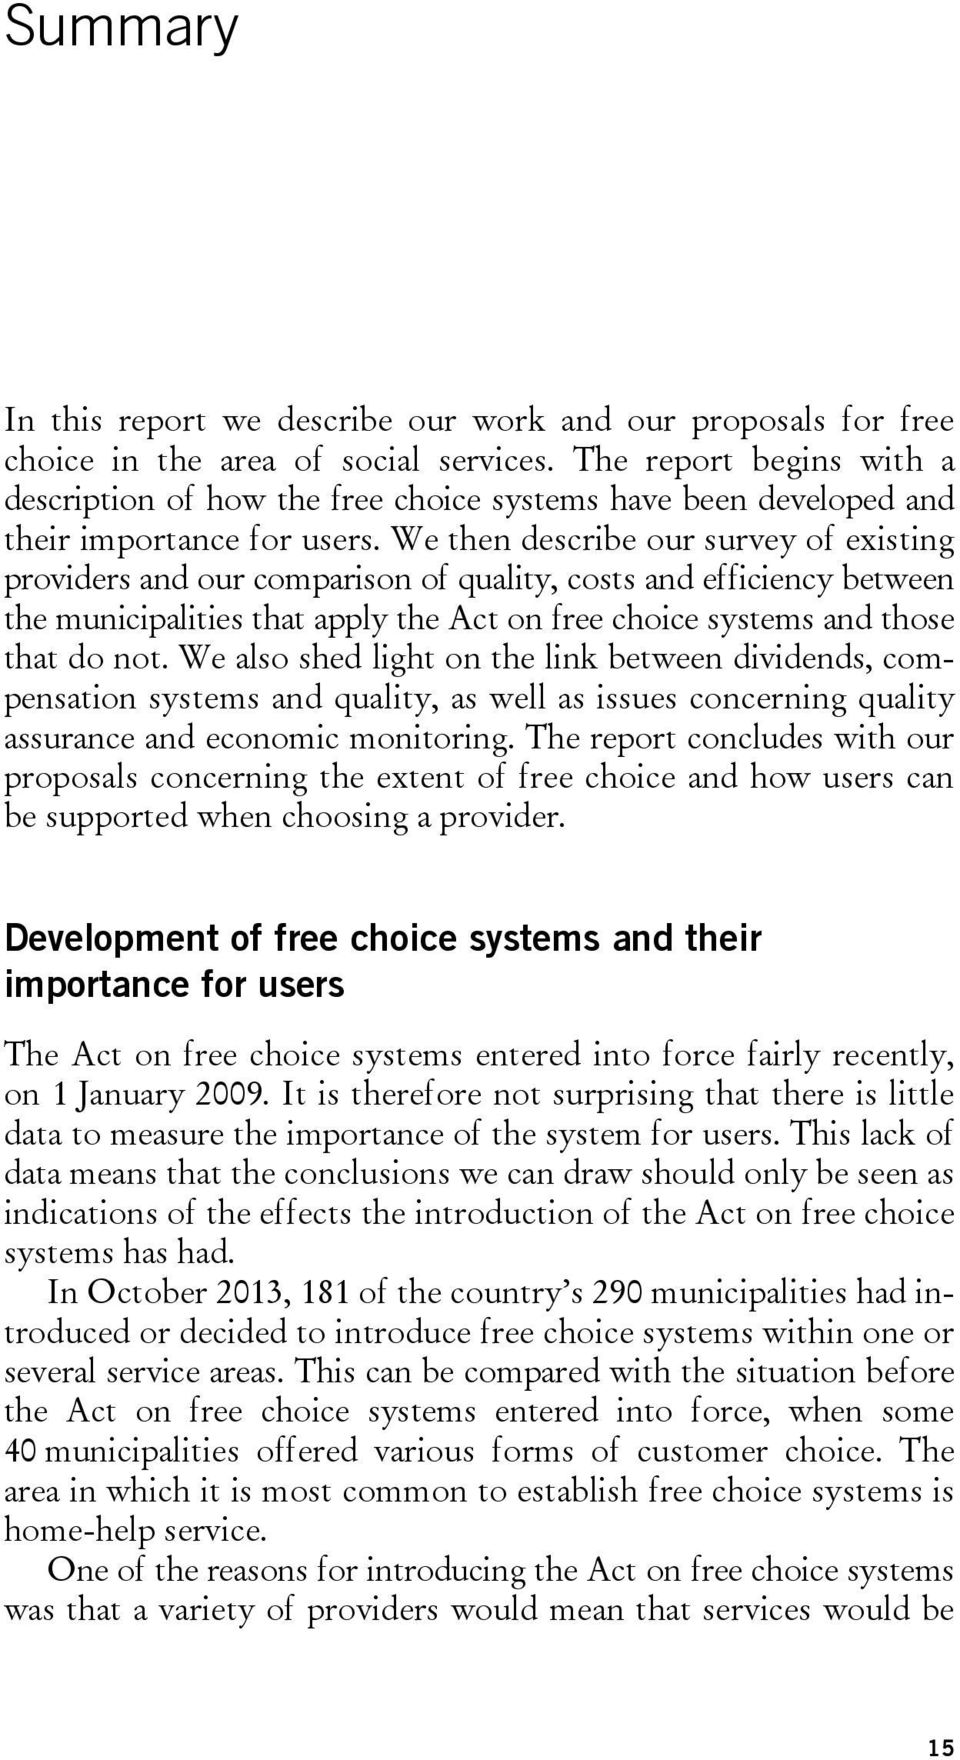 We then describe our survey of existing providers and our comparison of quality, costs and efficiency between the municipalities that apply the Act on free choice systems and those that do not.